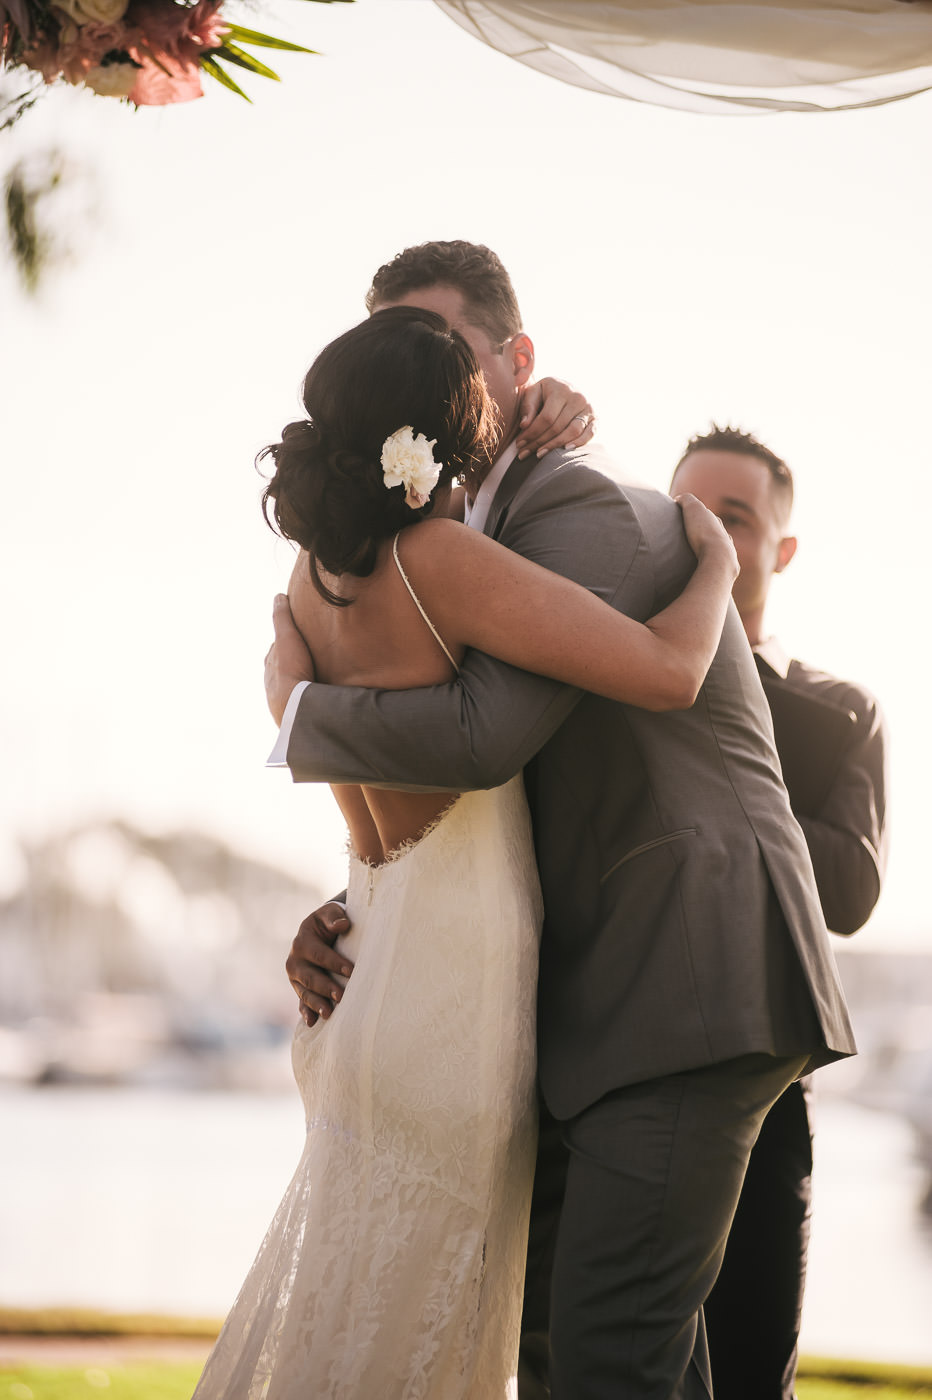 Passionate first kiss at this Marina Village wedding in San Diego California.